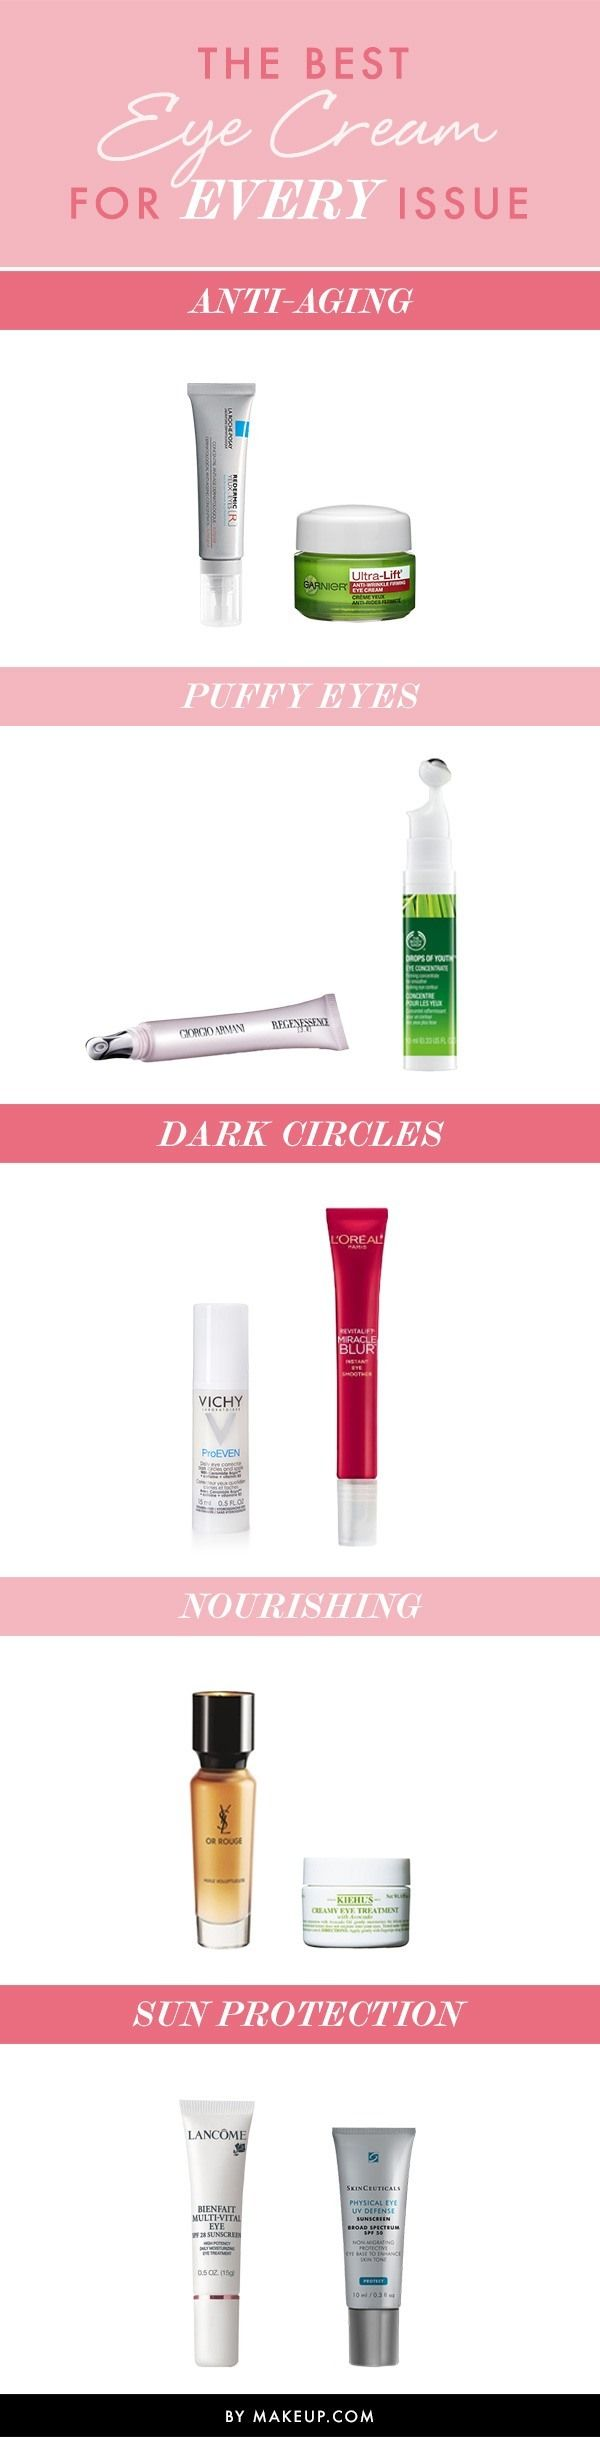 The Best Eye Cream for EVERY Issue